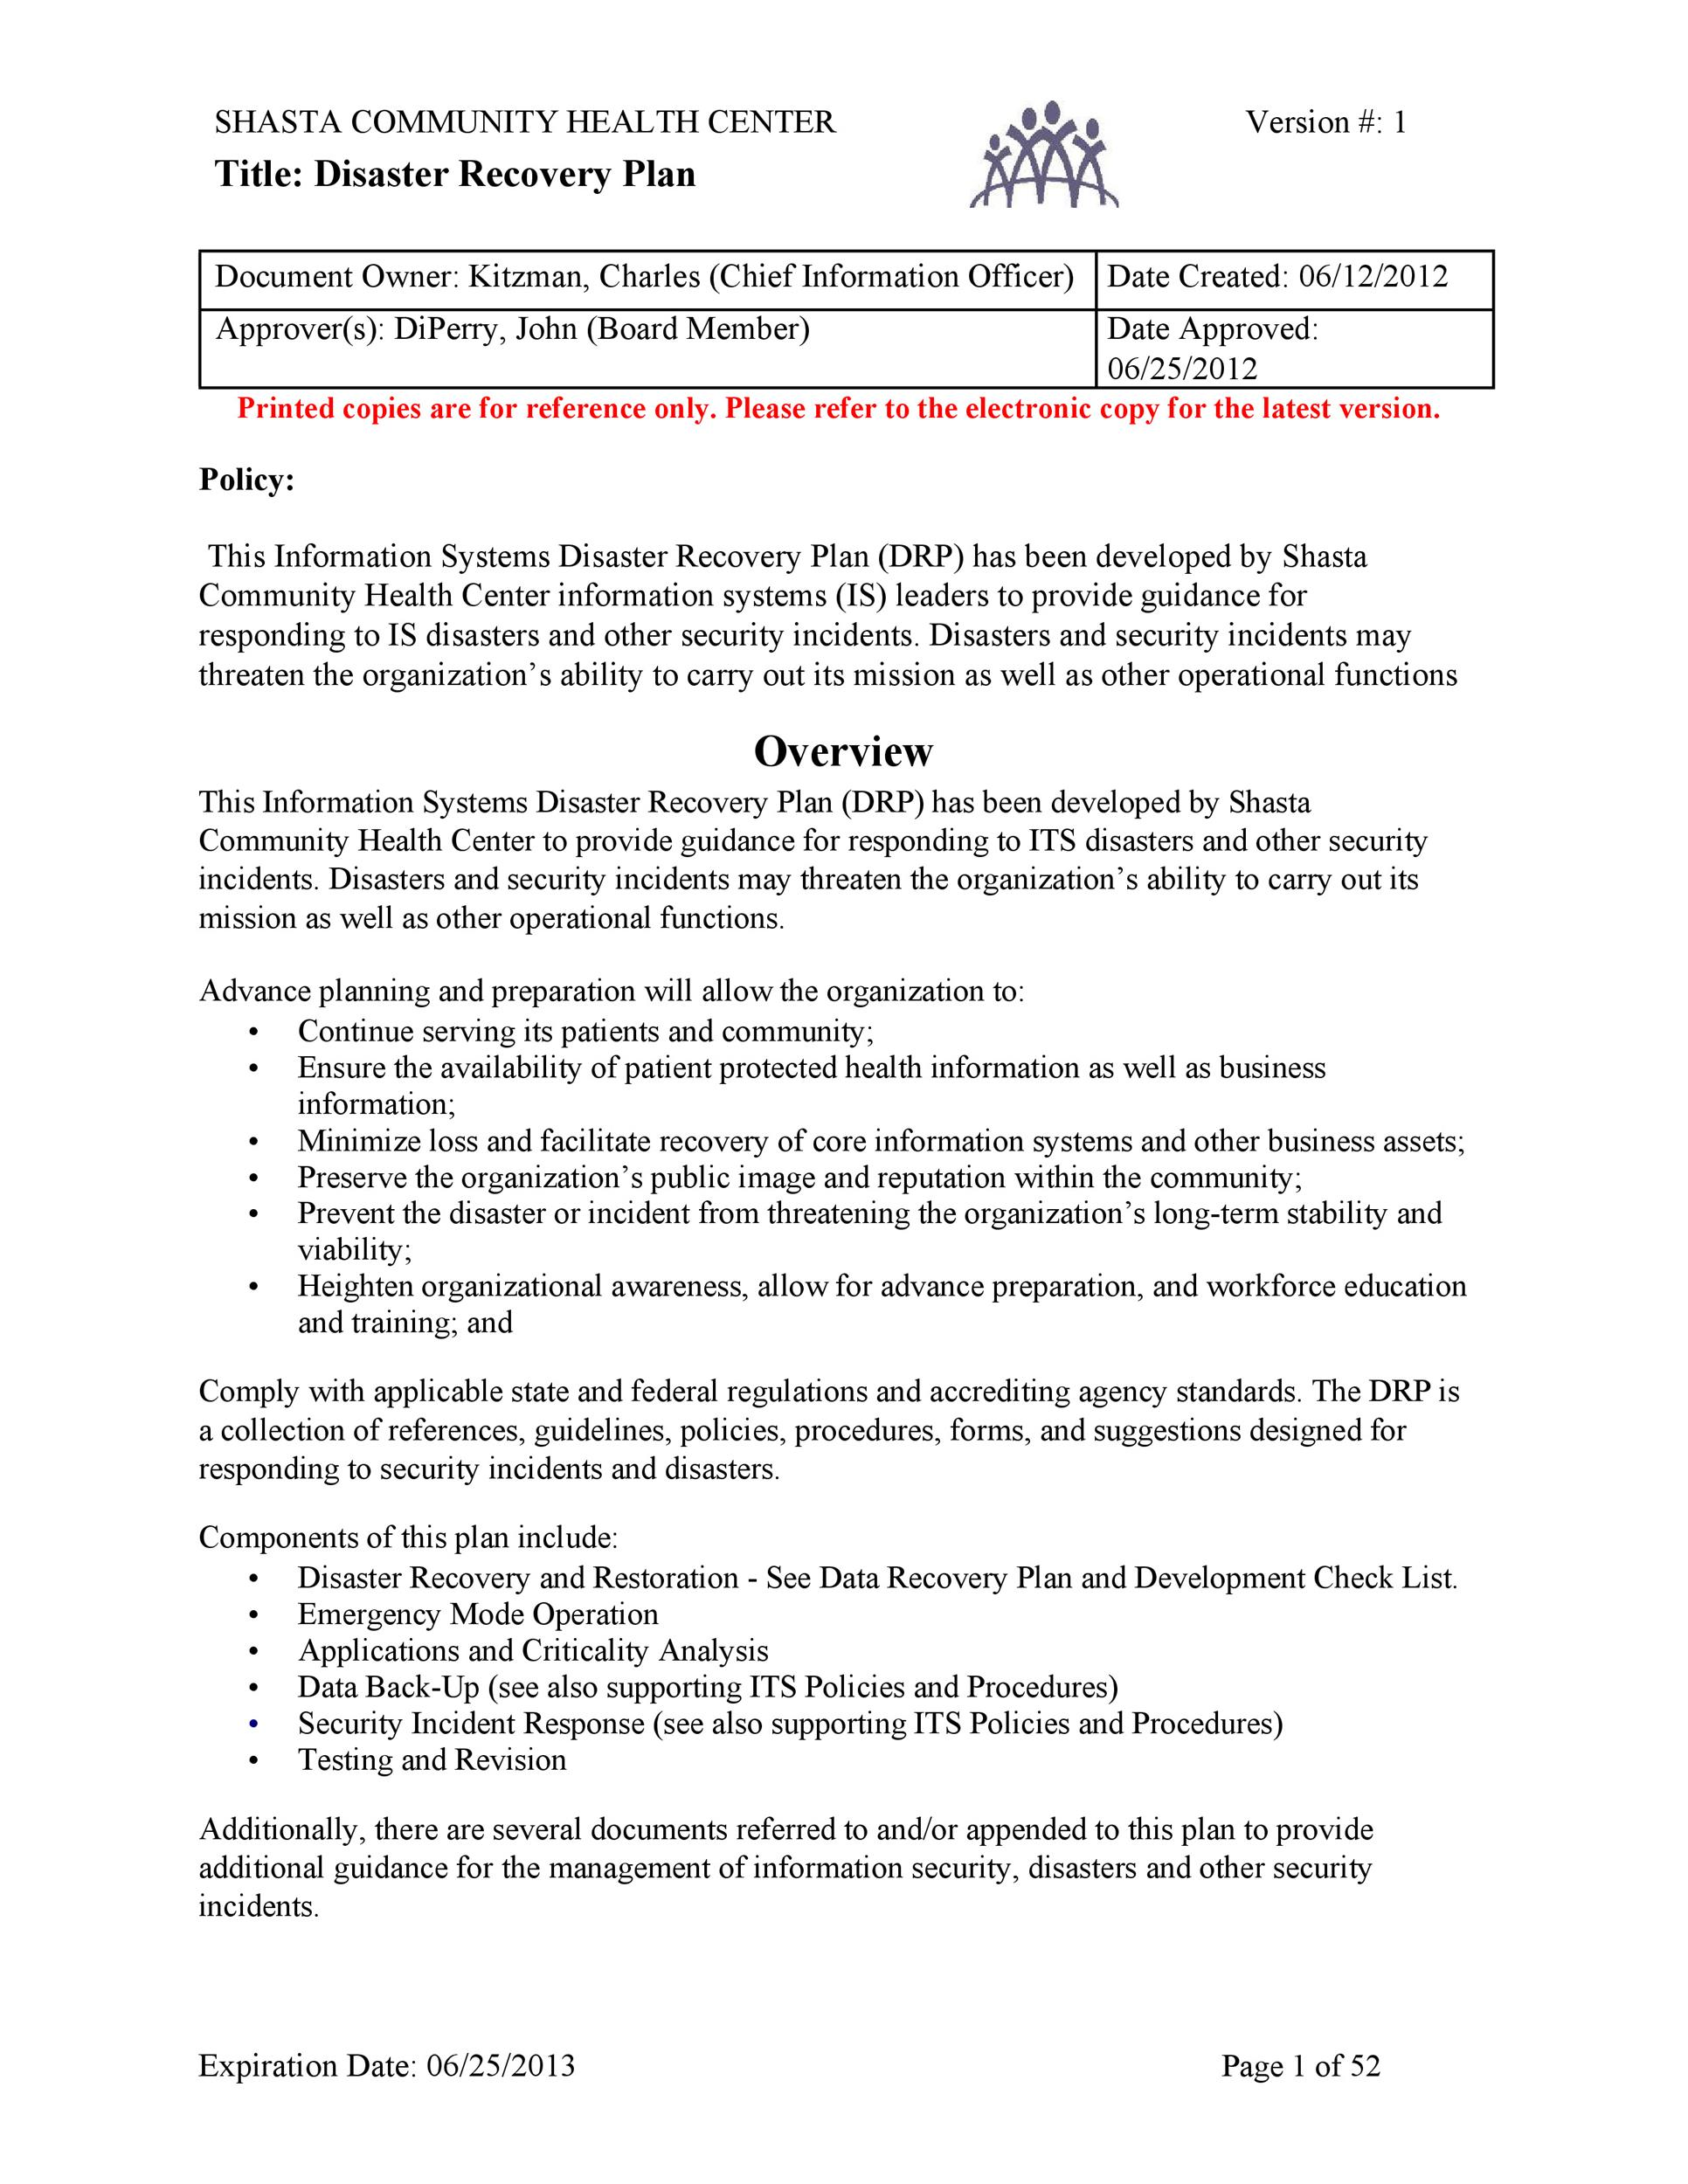 disaster recovery analyst sample resume roy hoppe it business - Disaster Recovery Analyst Sample Resume